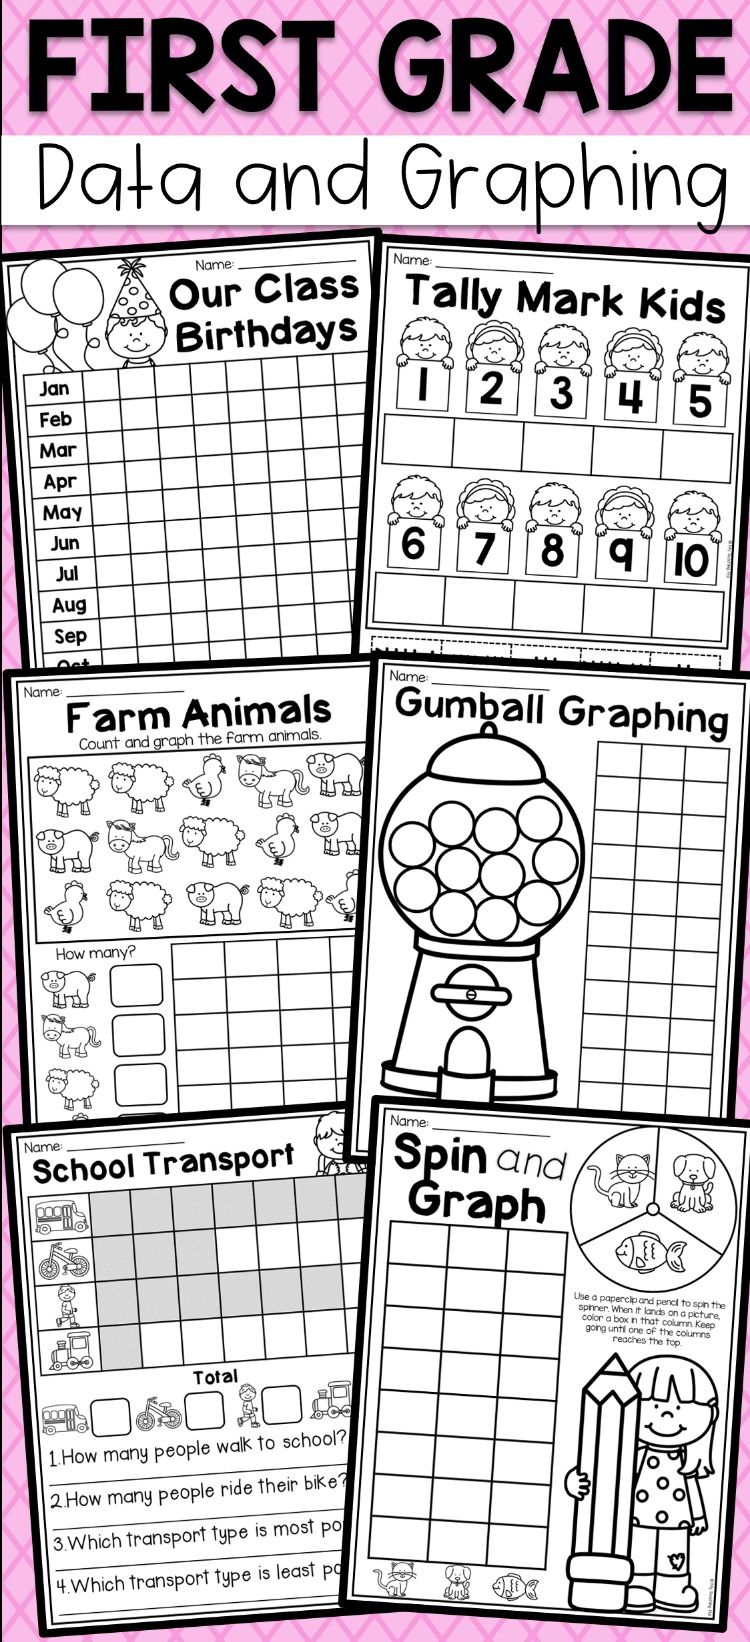 small resolution of First Grade Data and Graphing Worksheets - Distance Learning   Graphing  first grade